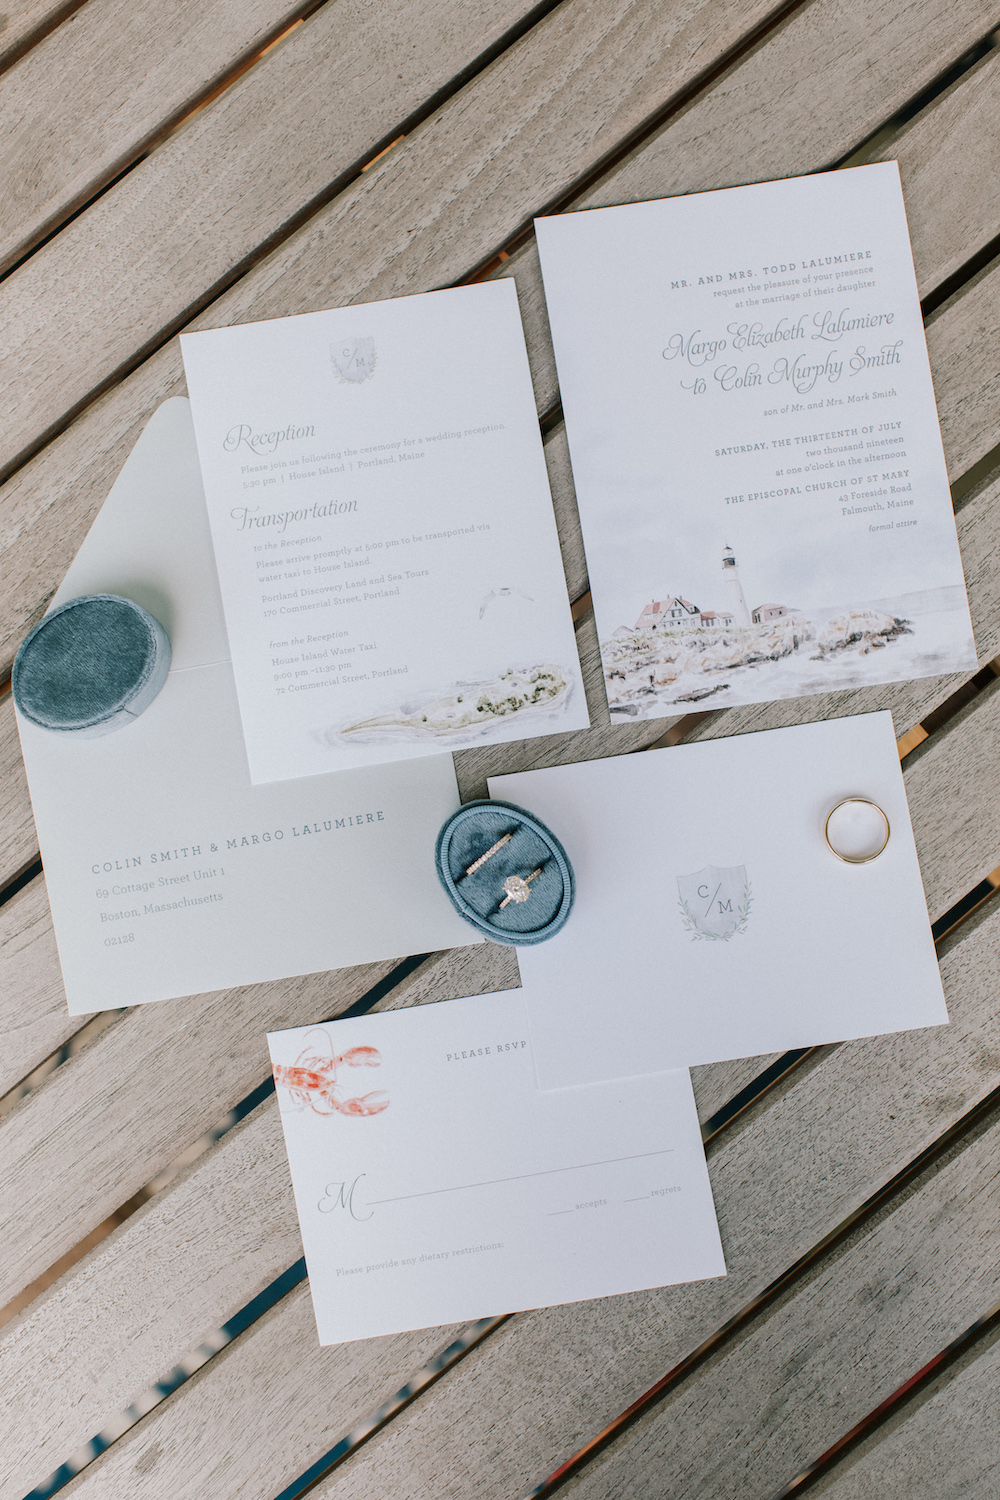 Custom wedding invitation suite with wedding rings and velvet box